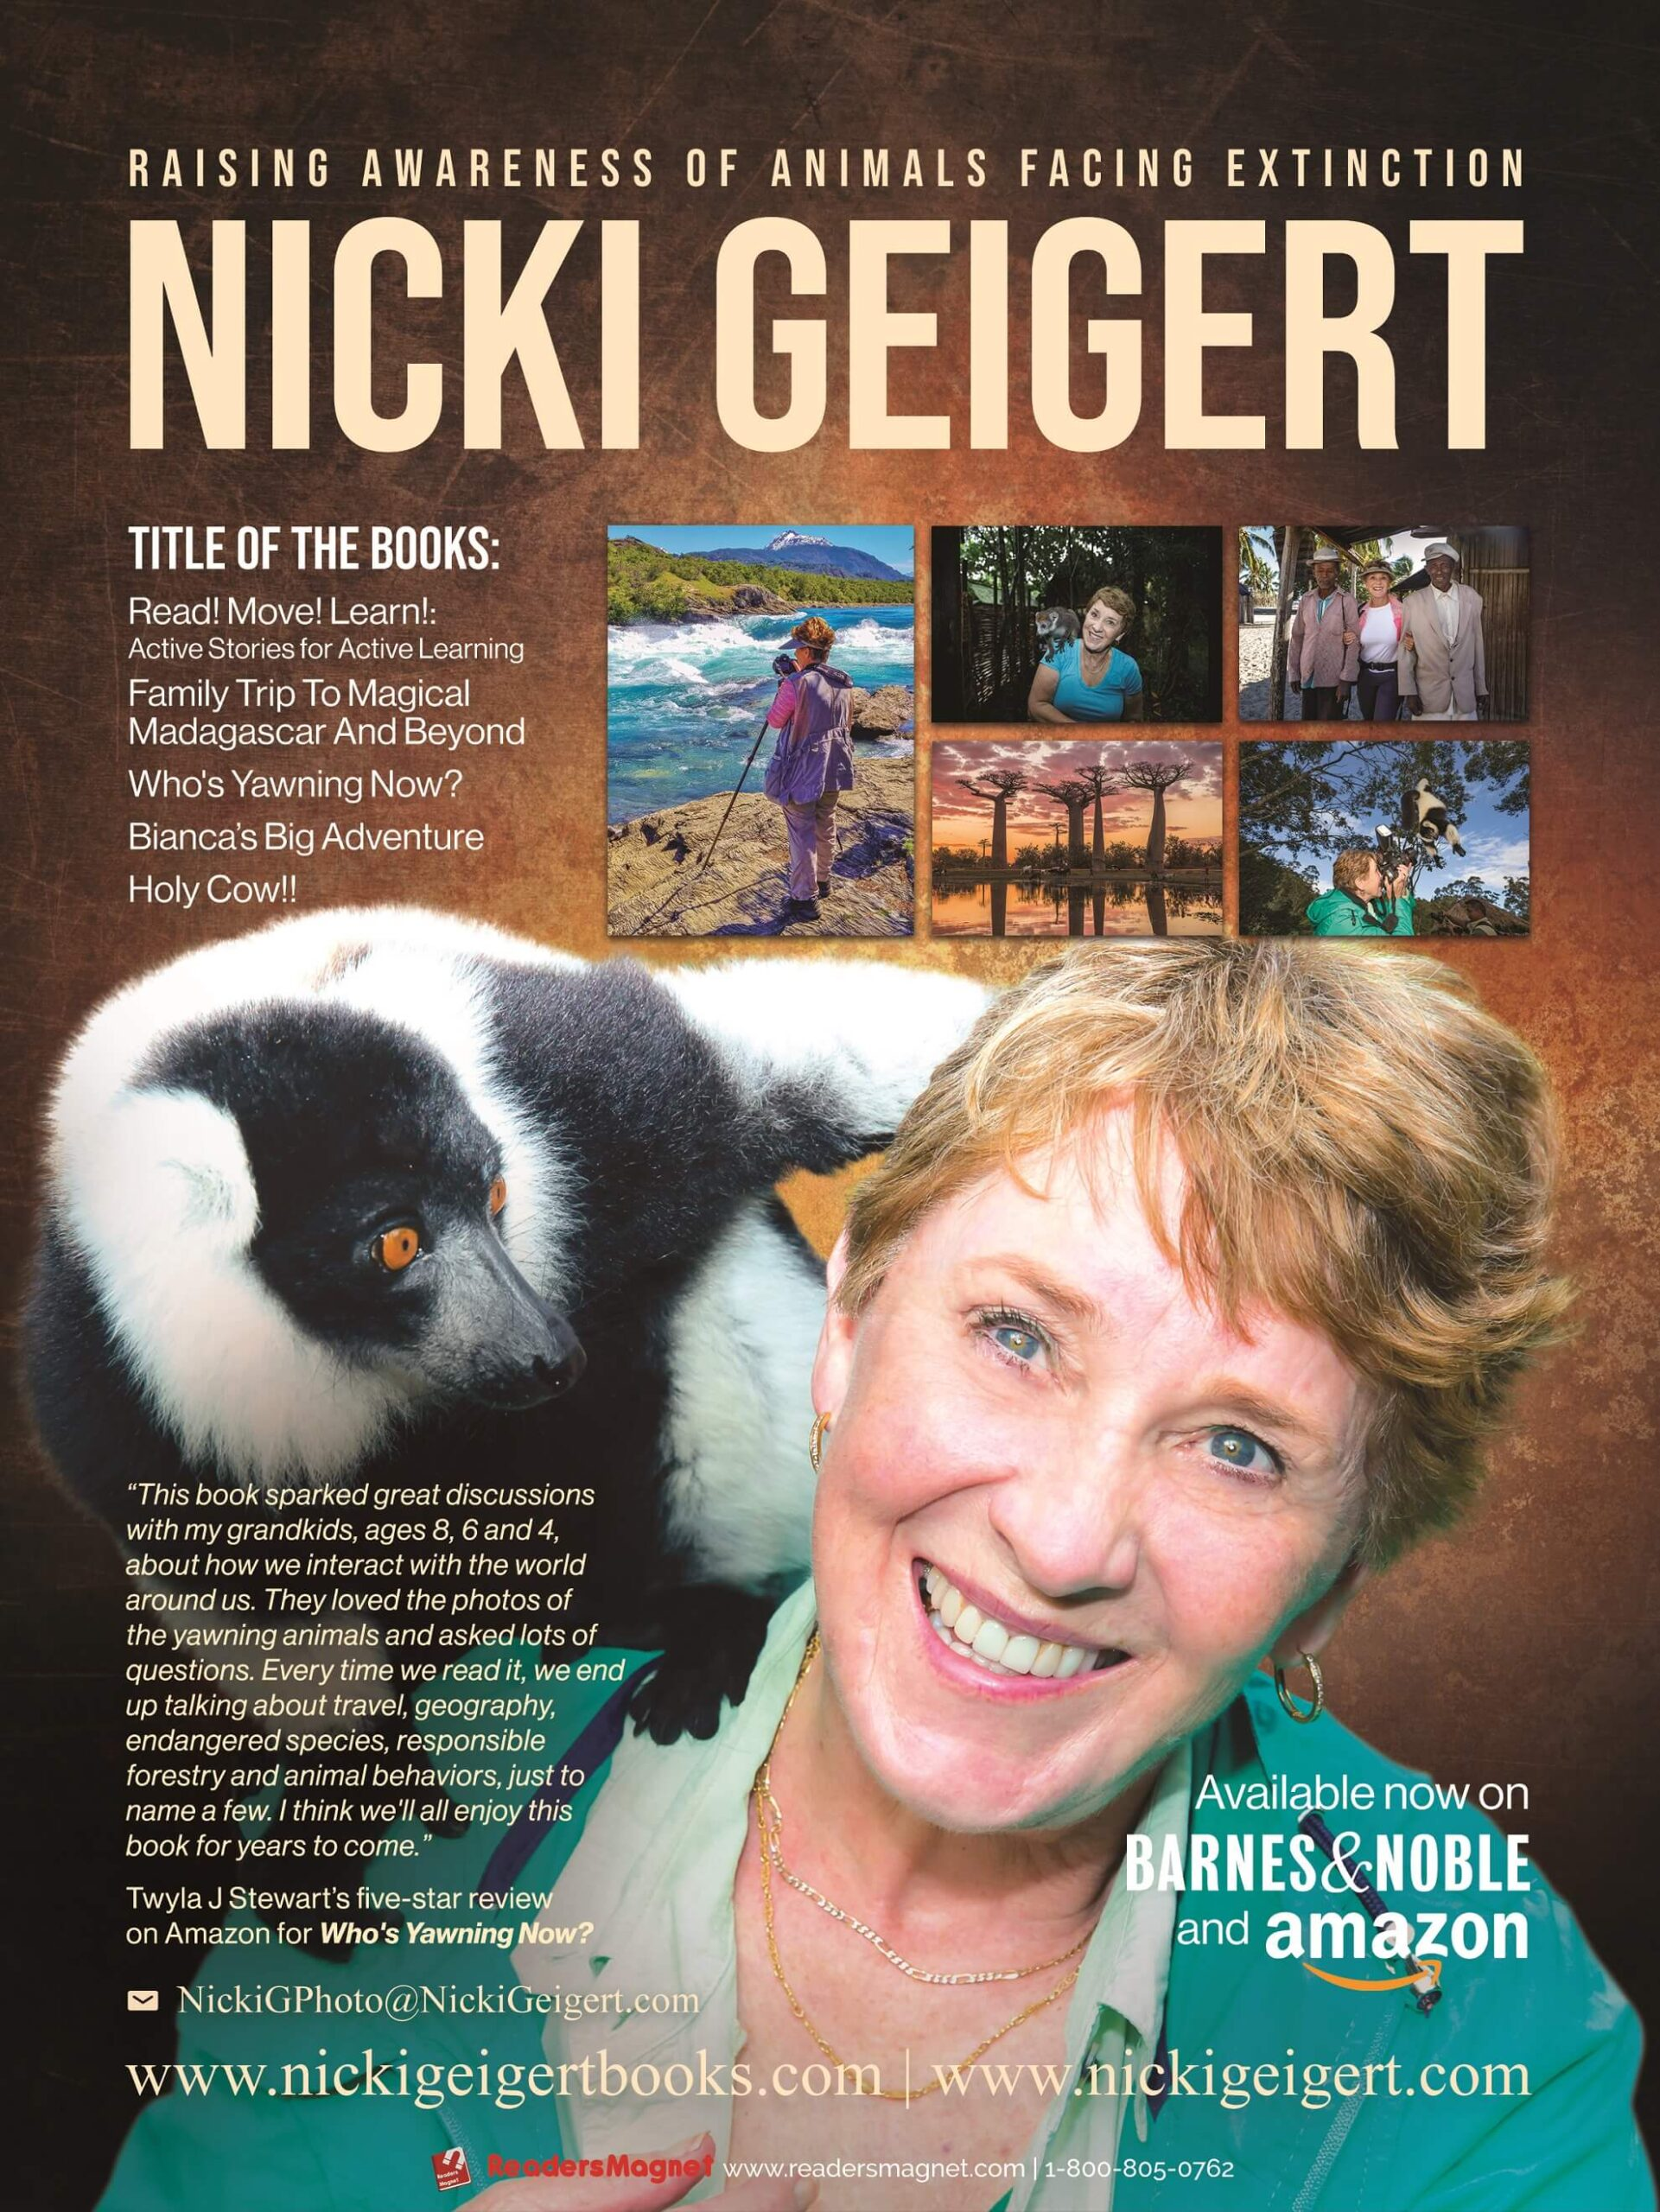 Nicki Geigert Full Page Author